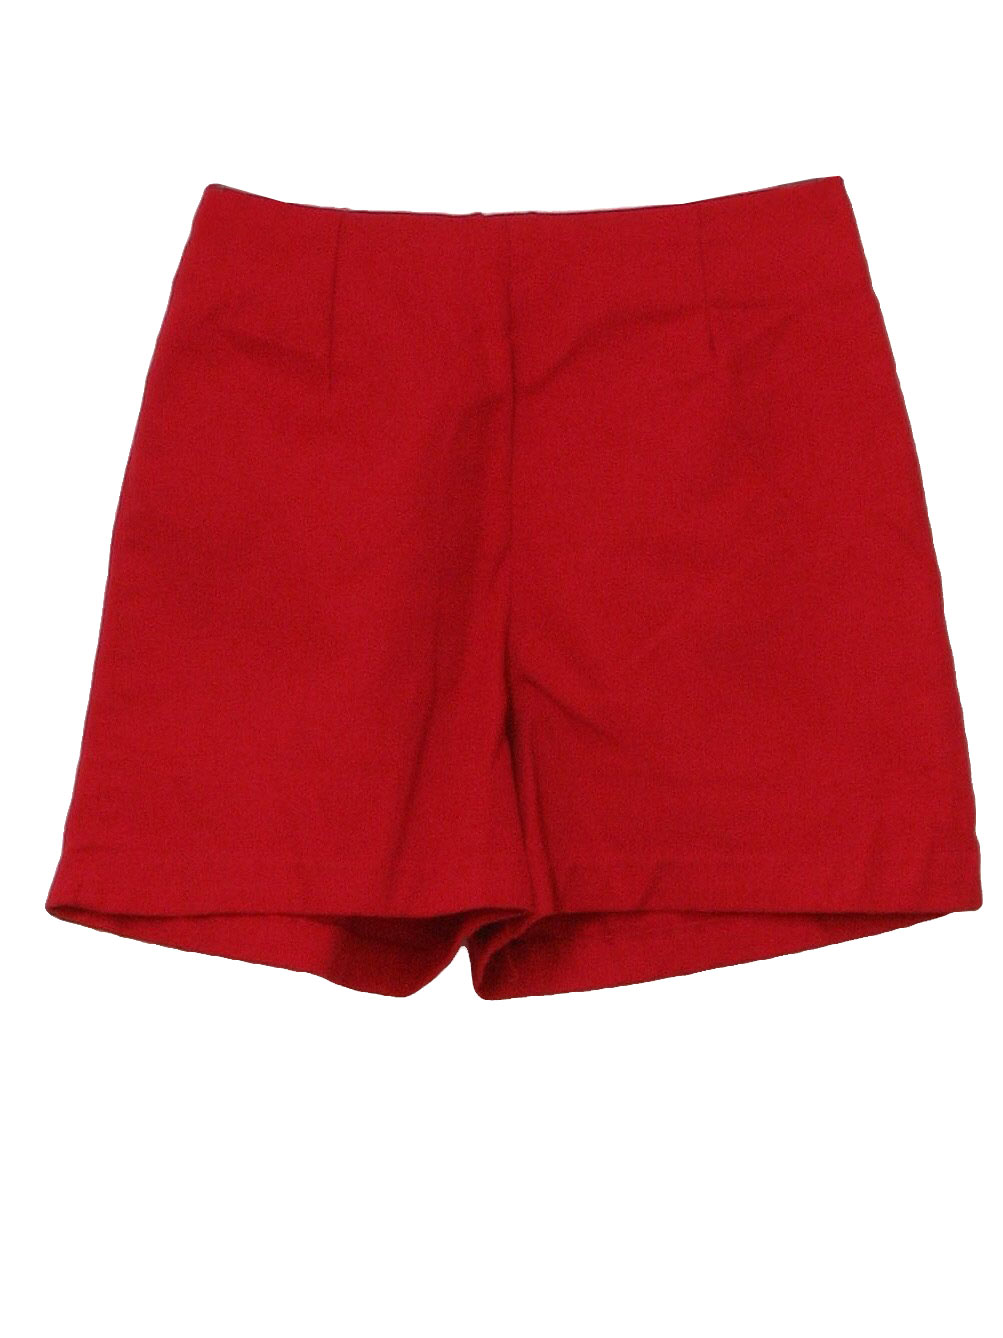 Red Shorts Womens